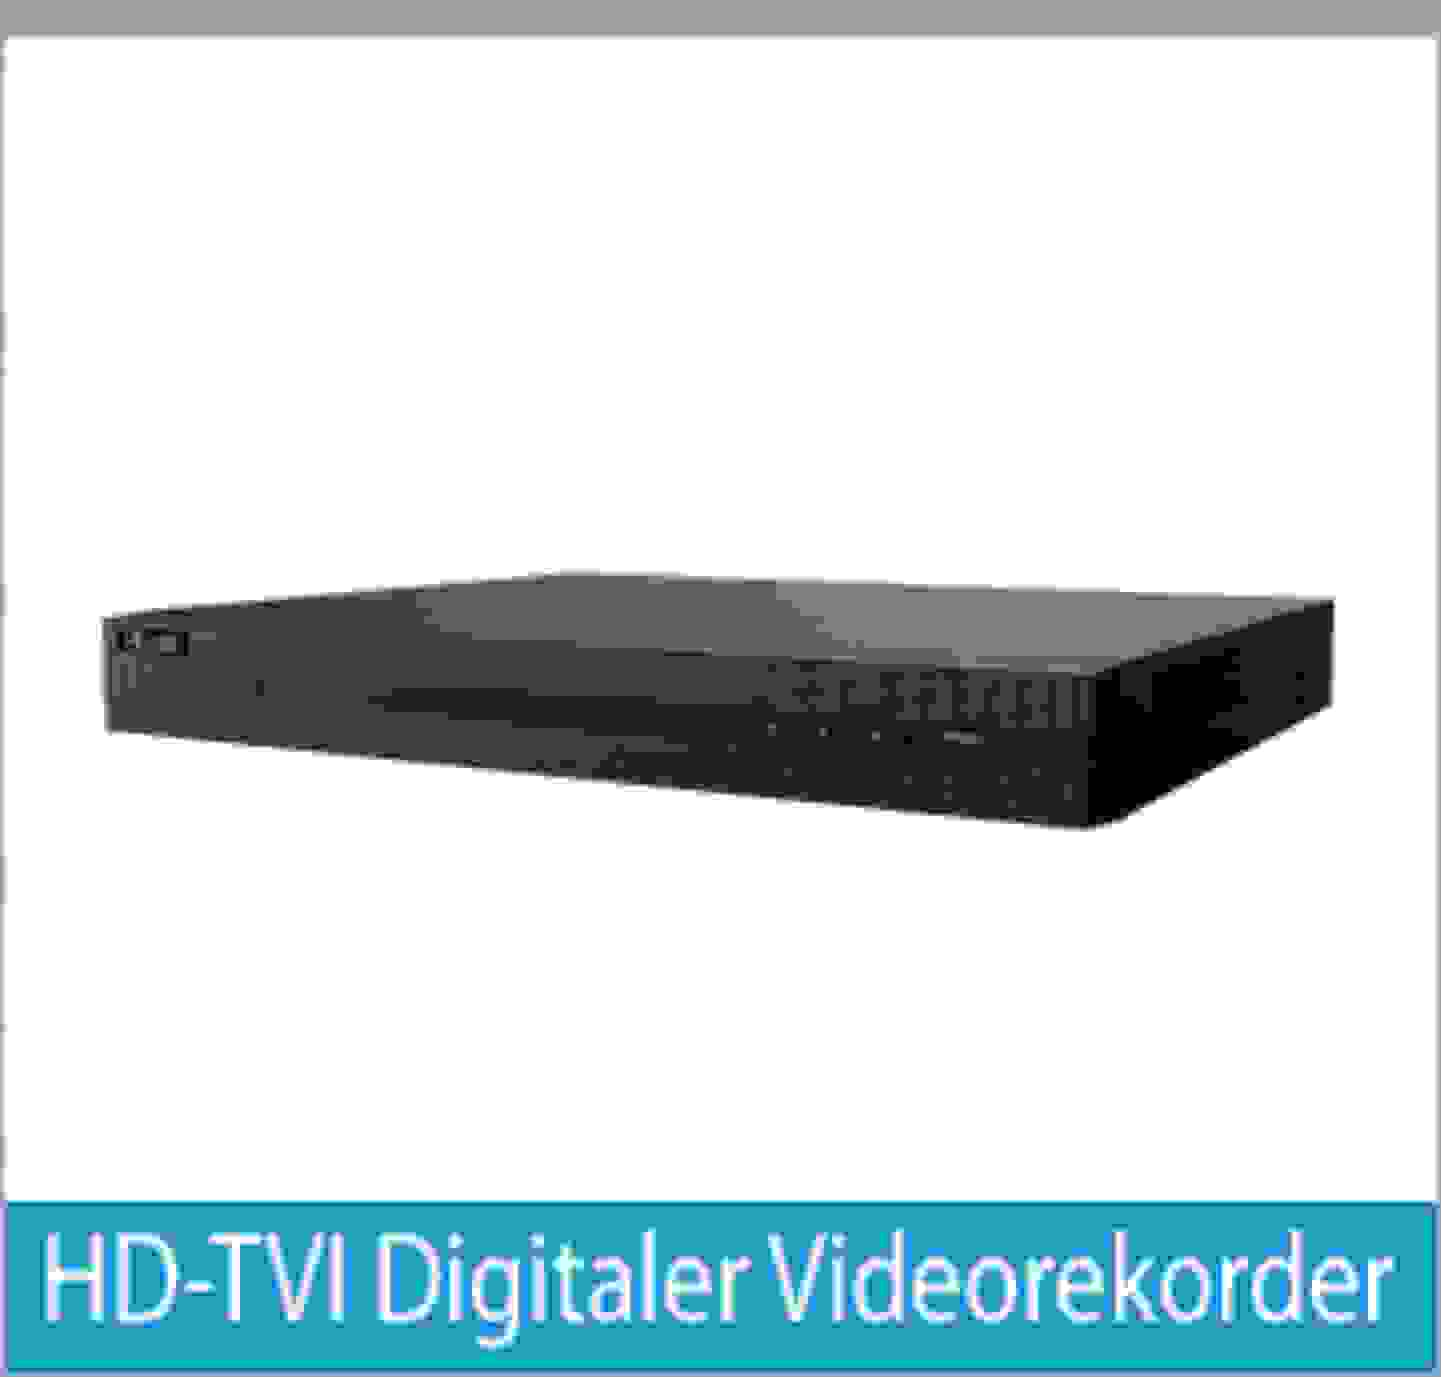 HD-TVI Digitaler Videorekorder